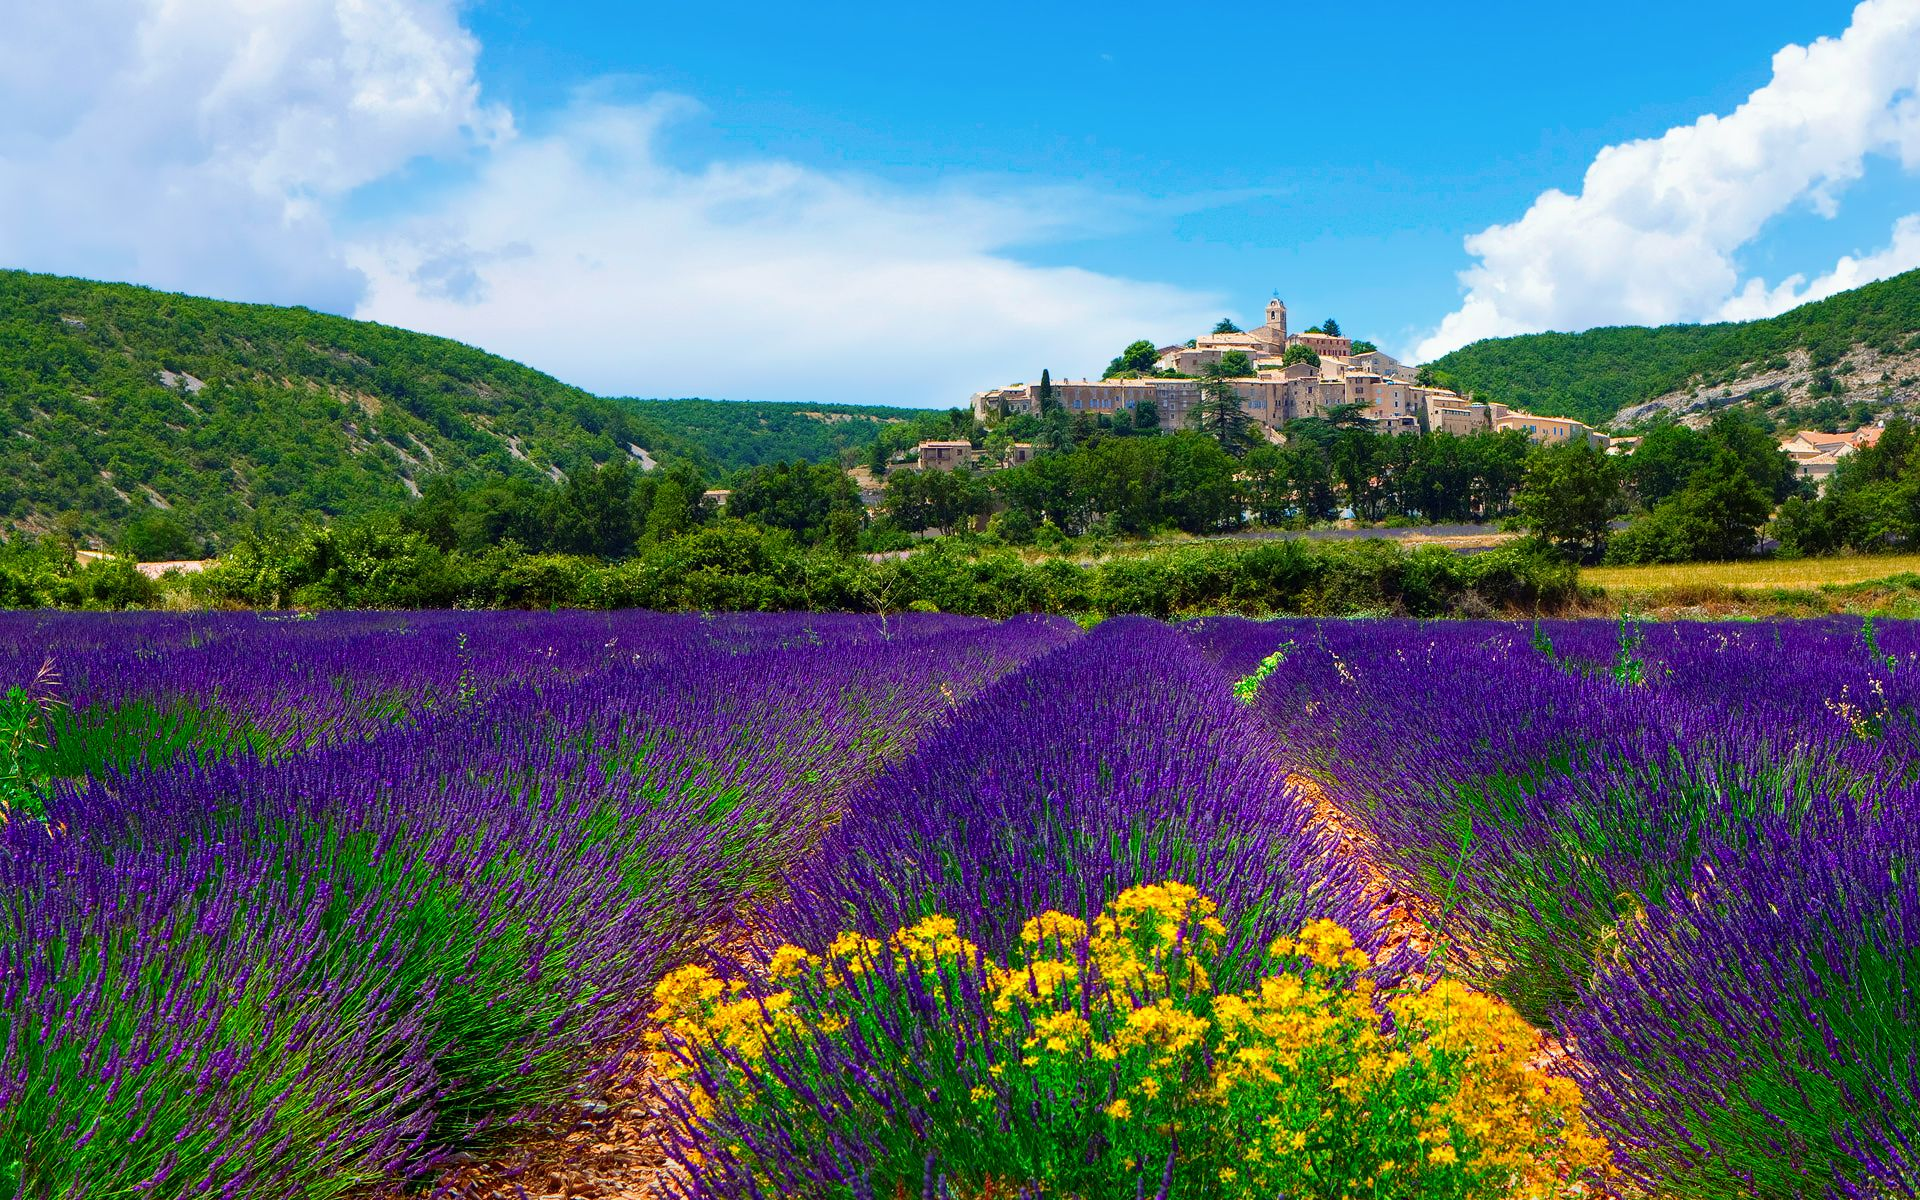 Field Lavender Purple Flowers France Country Castle Kingdom Jpg 1920 1200 Божье творение Pinterest Provence Fields And